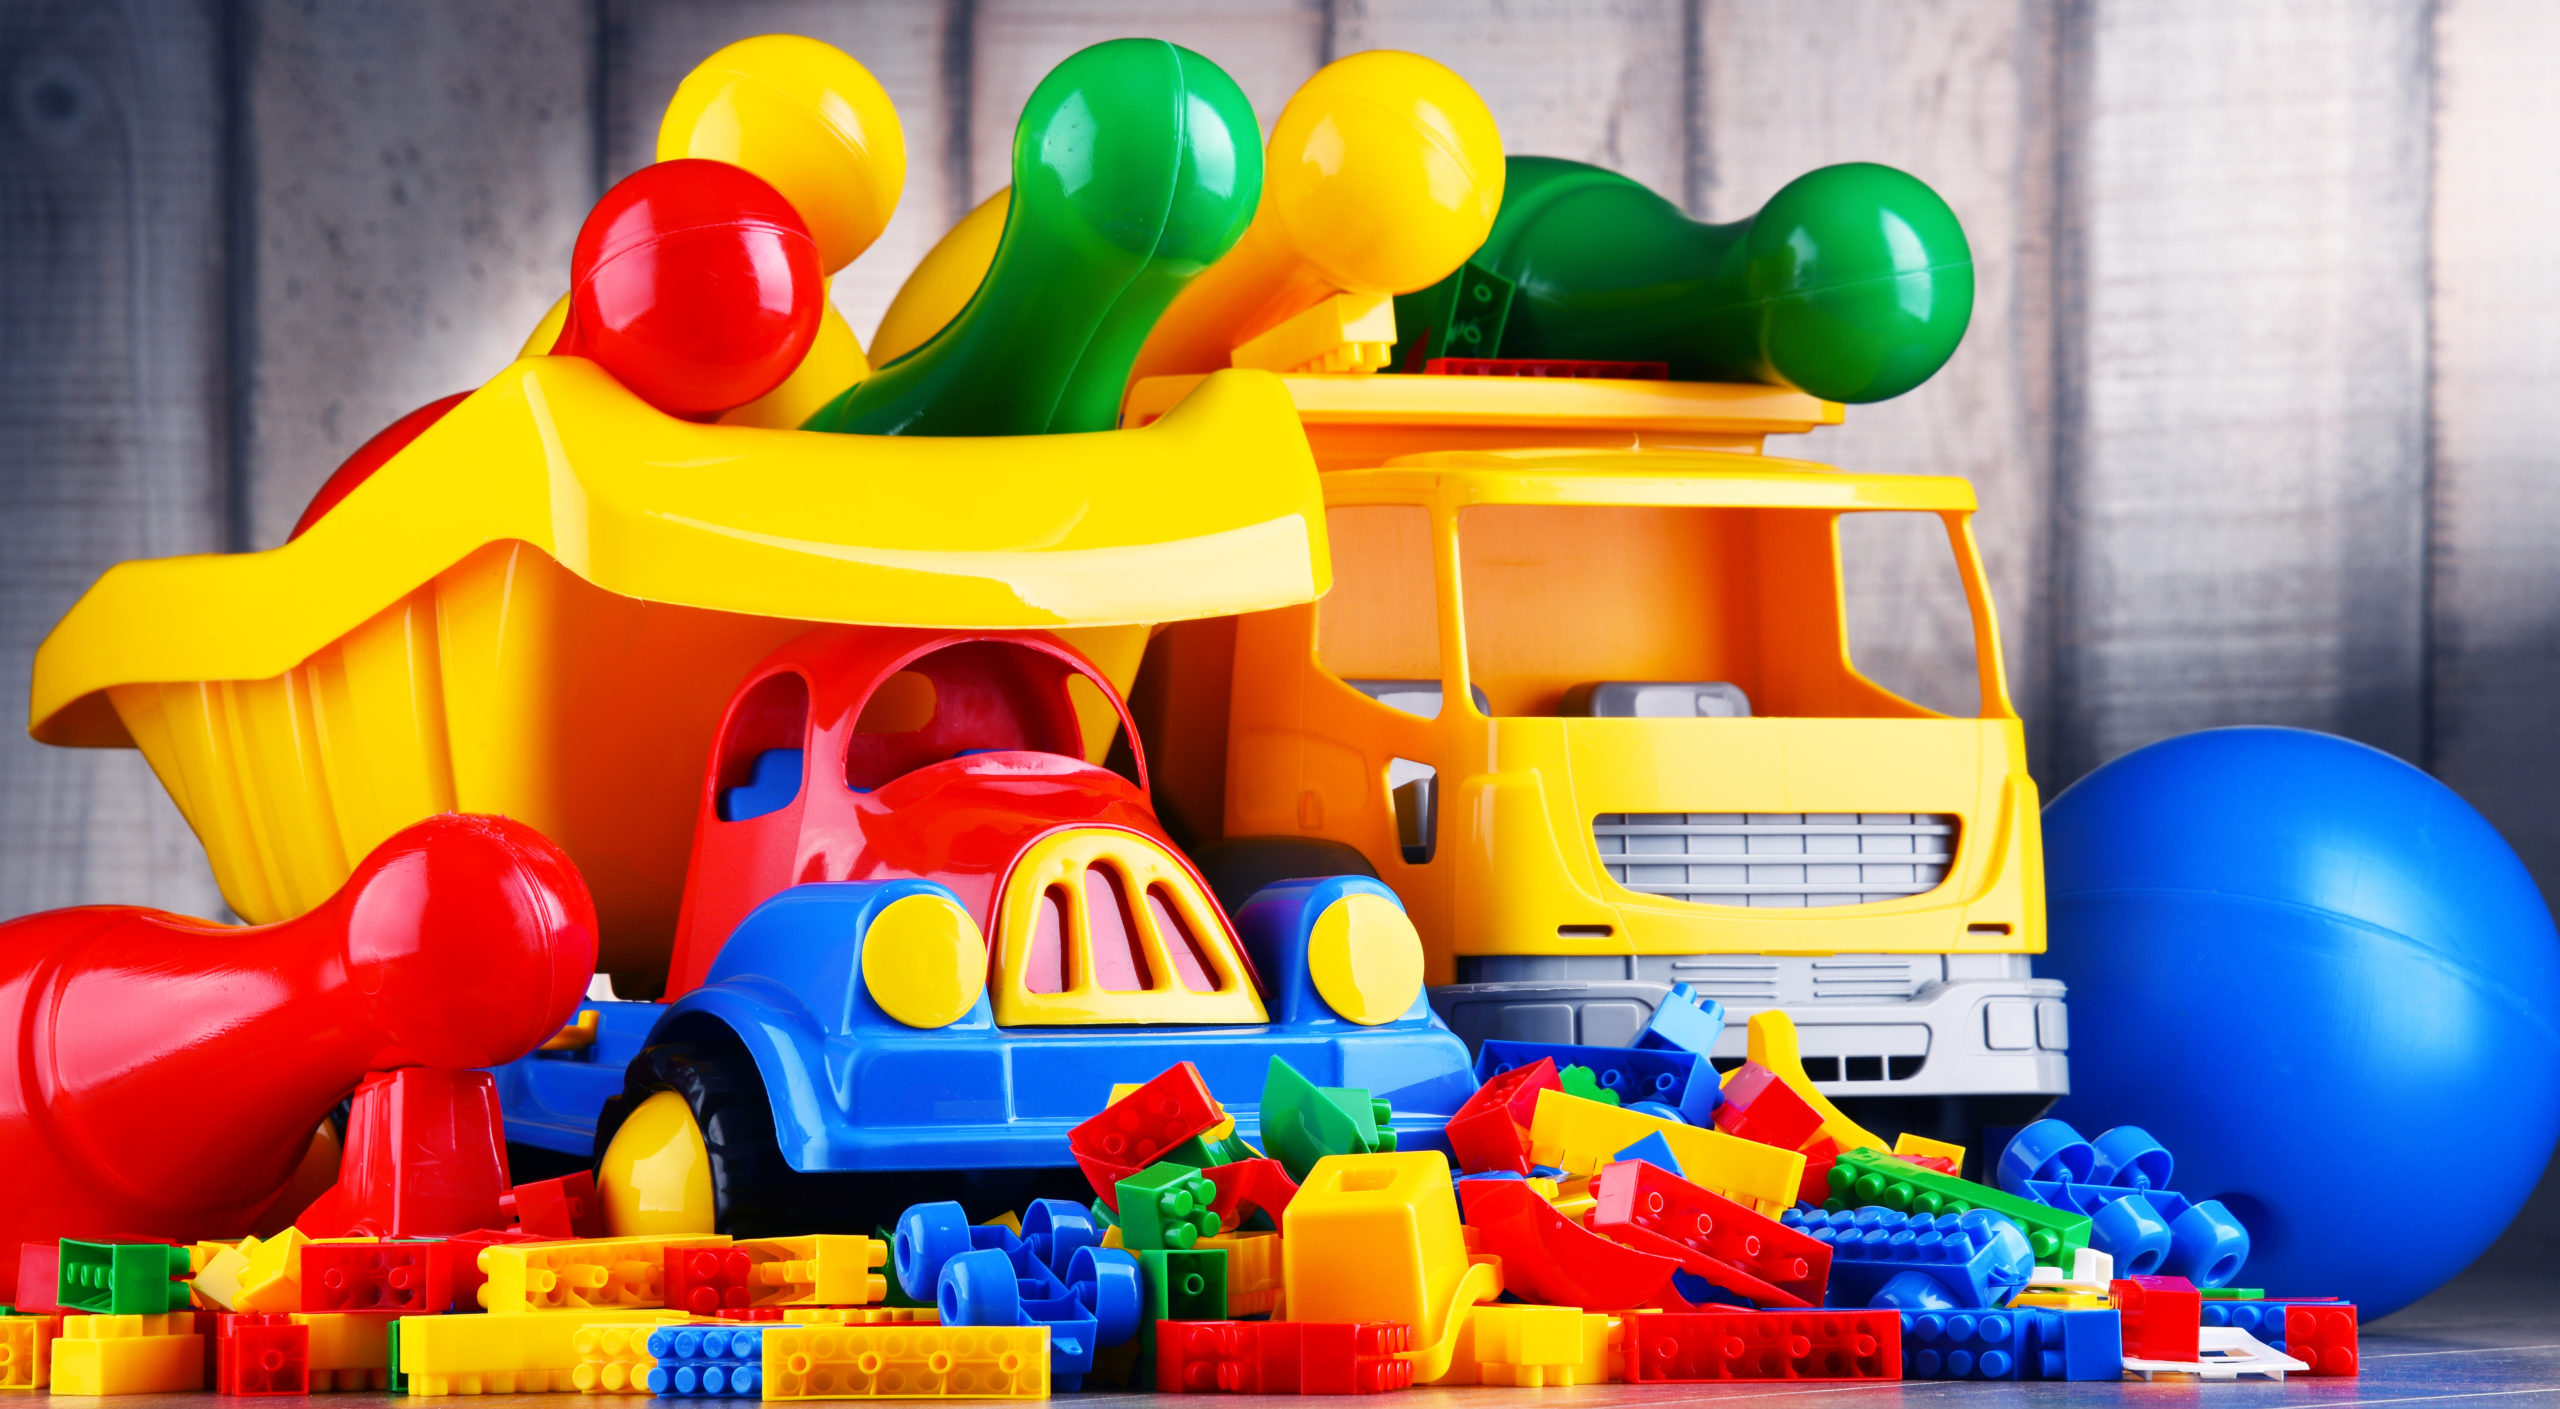 New Study Finds Potentially Harmful Chemicals in Plastic Toys